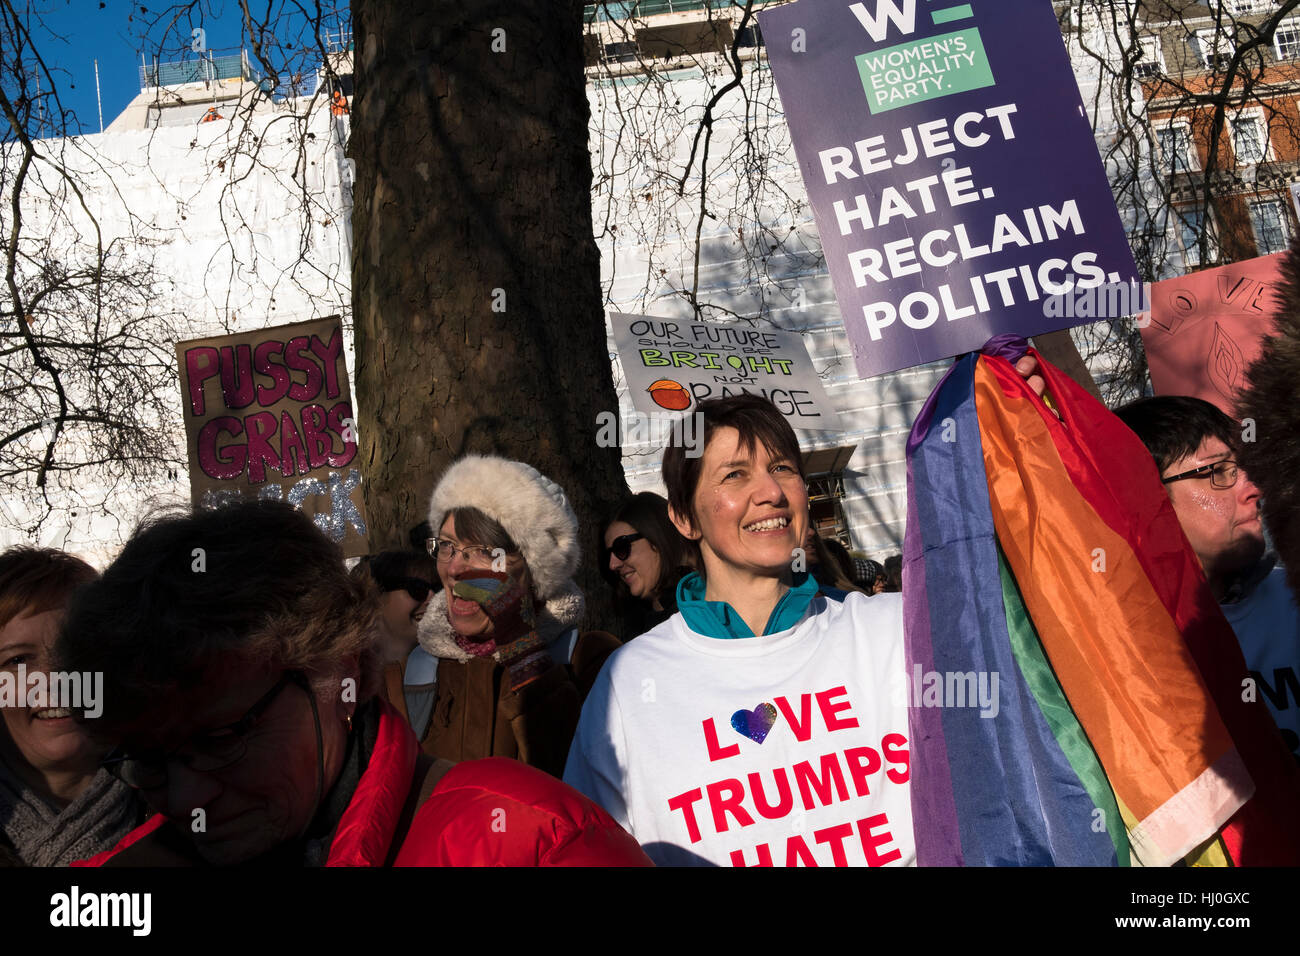 London, UK. 21st Jan, 2017. An estimated 100,000 people protested against the election of Donald Trump. The Womens' - Stock Image